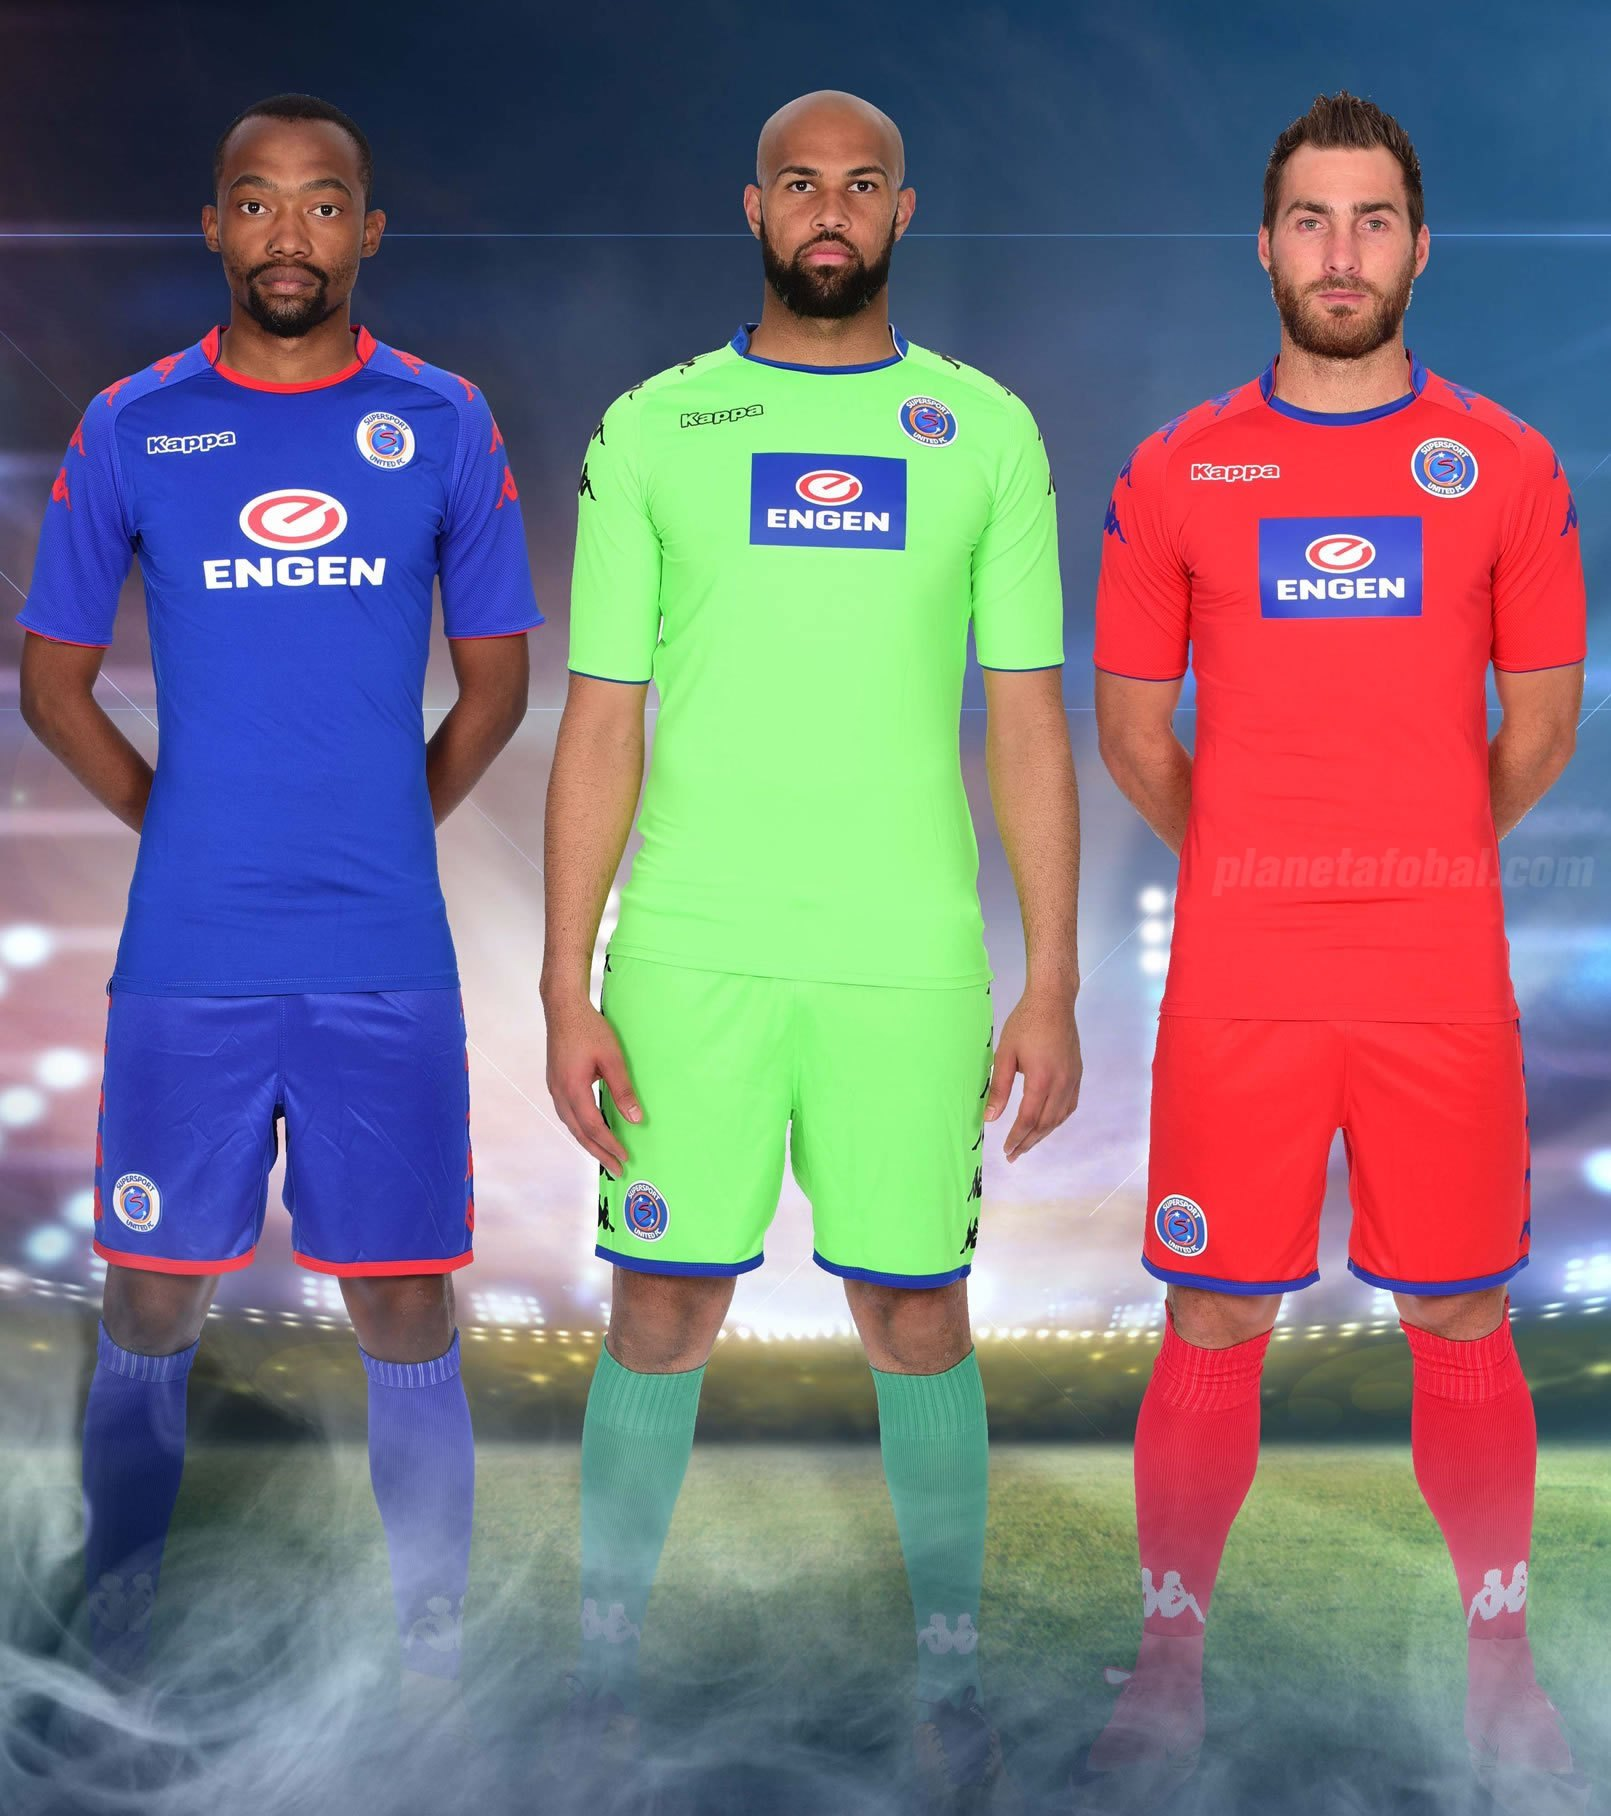 Nuevas camisetas Kappa del SuperSport United FC | Foto Web Oficial